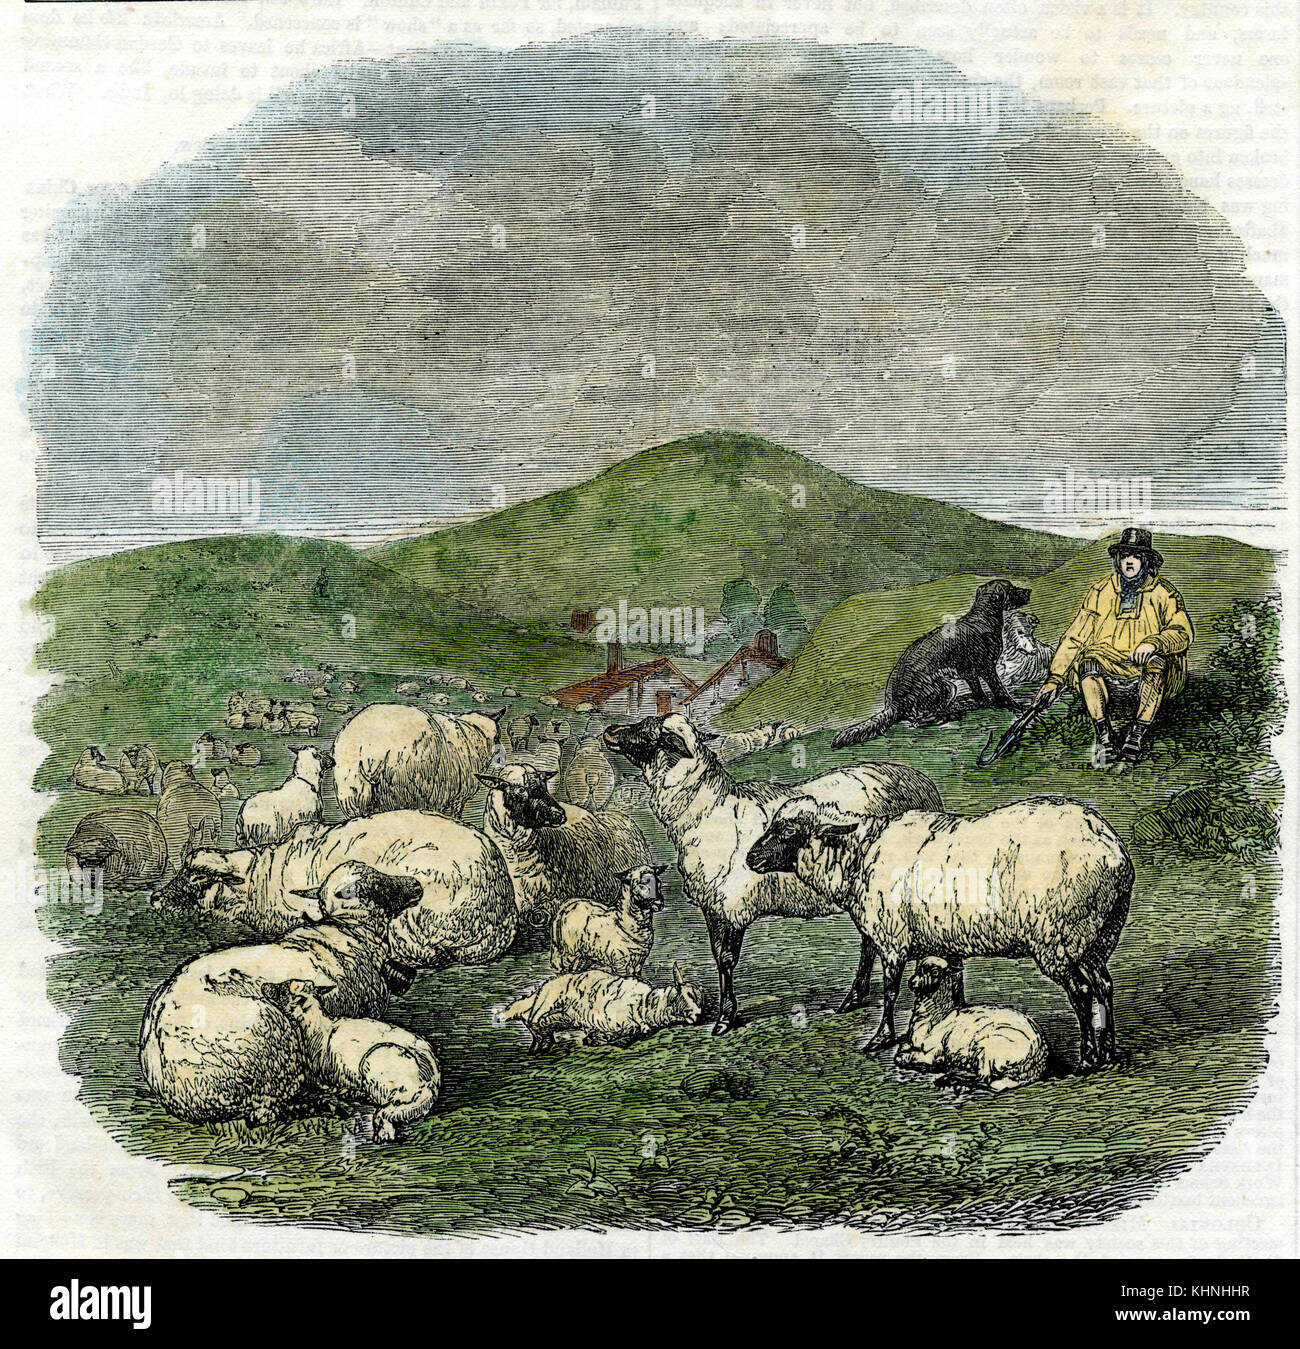 Sheep. Painted by Herring. From: Illustrated London News (Schafe. Gemalt von Herring. Aus: Illustrated London News) - Stock Image